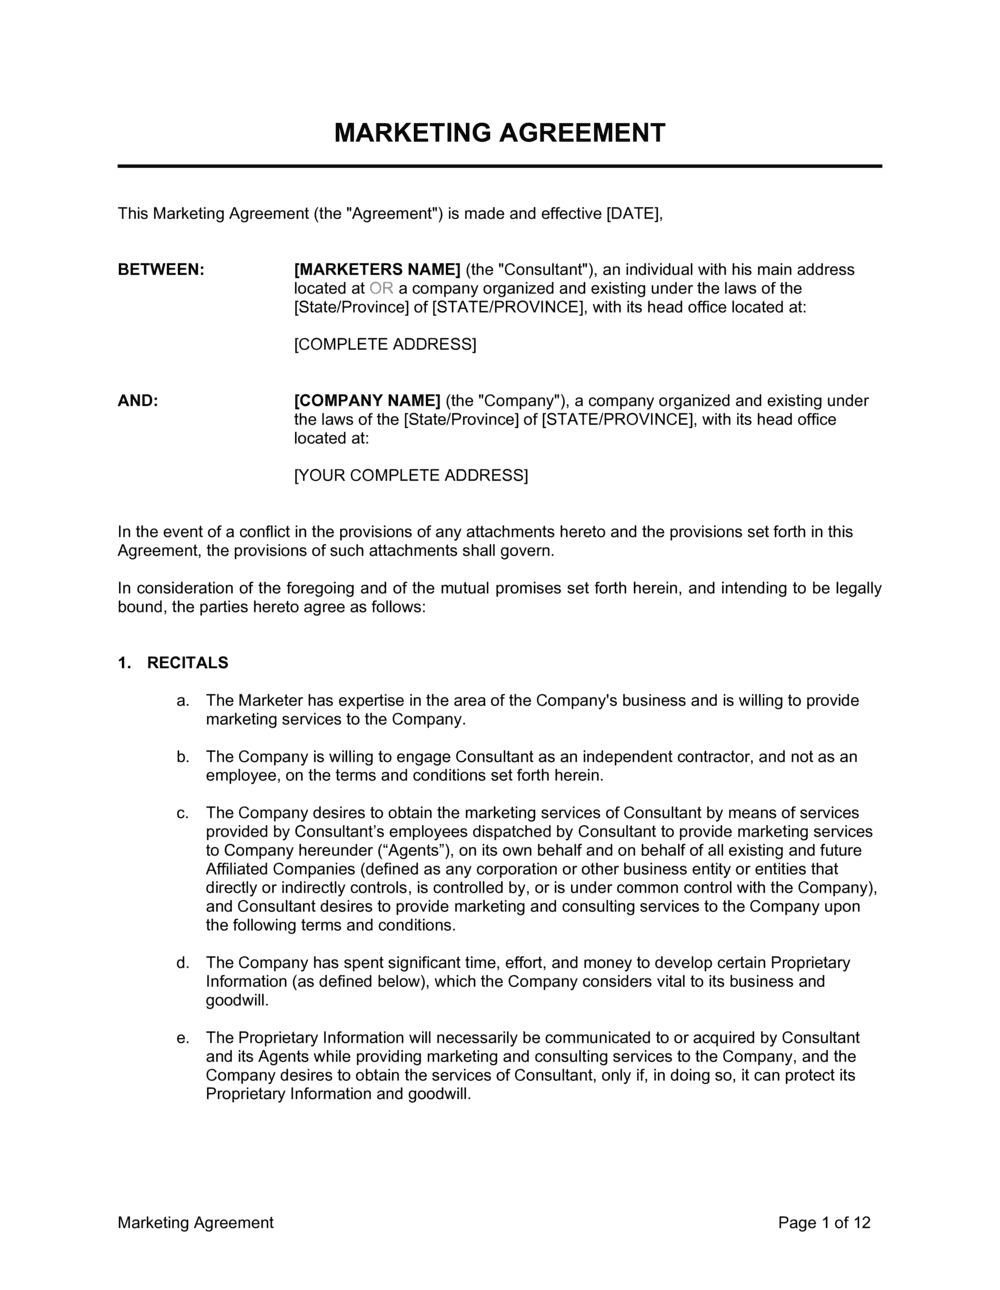 Business-in-a-Box's Marketing Agreement Template